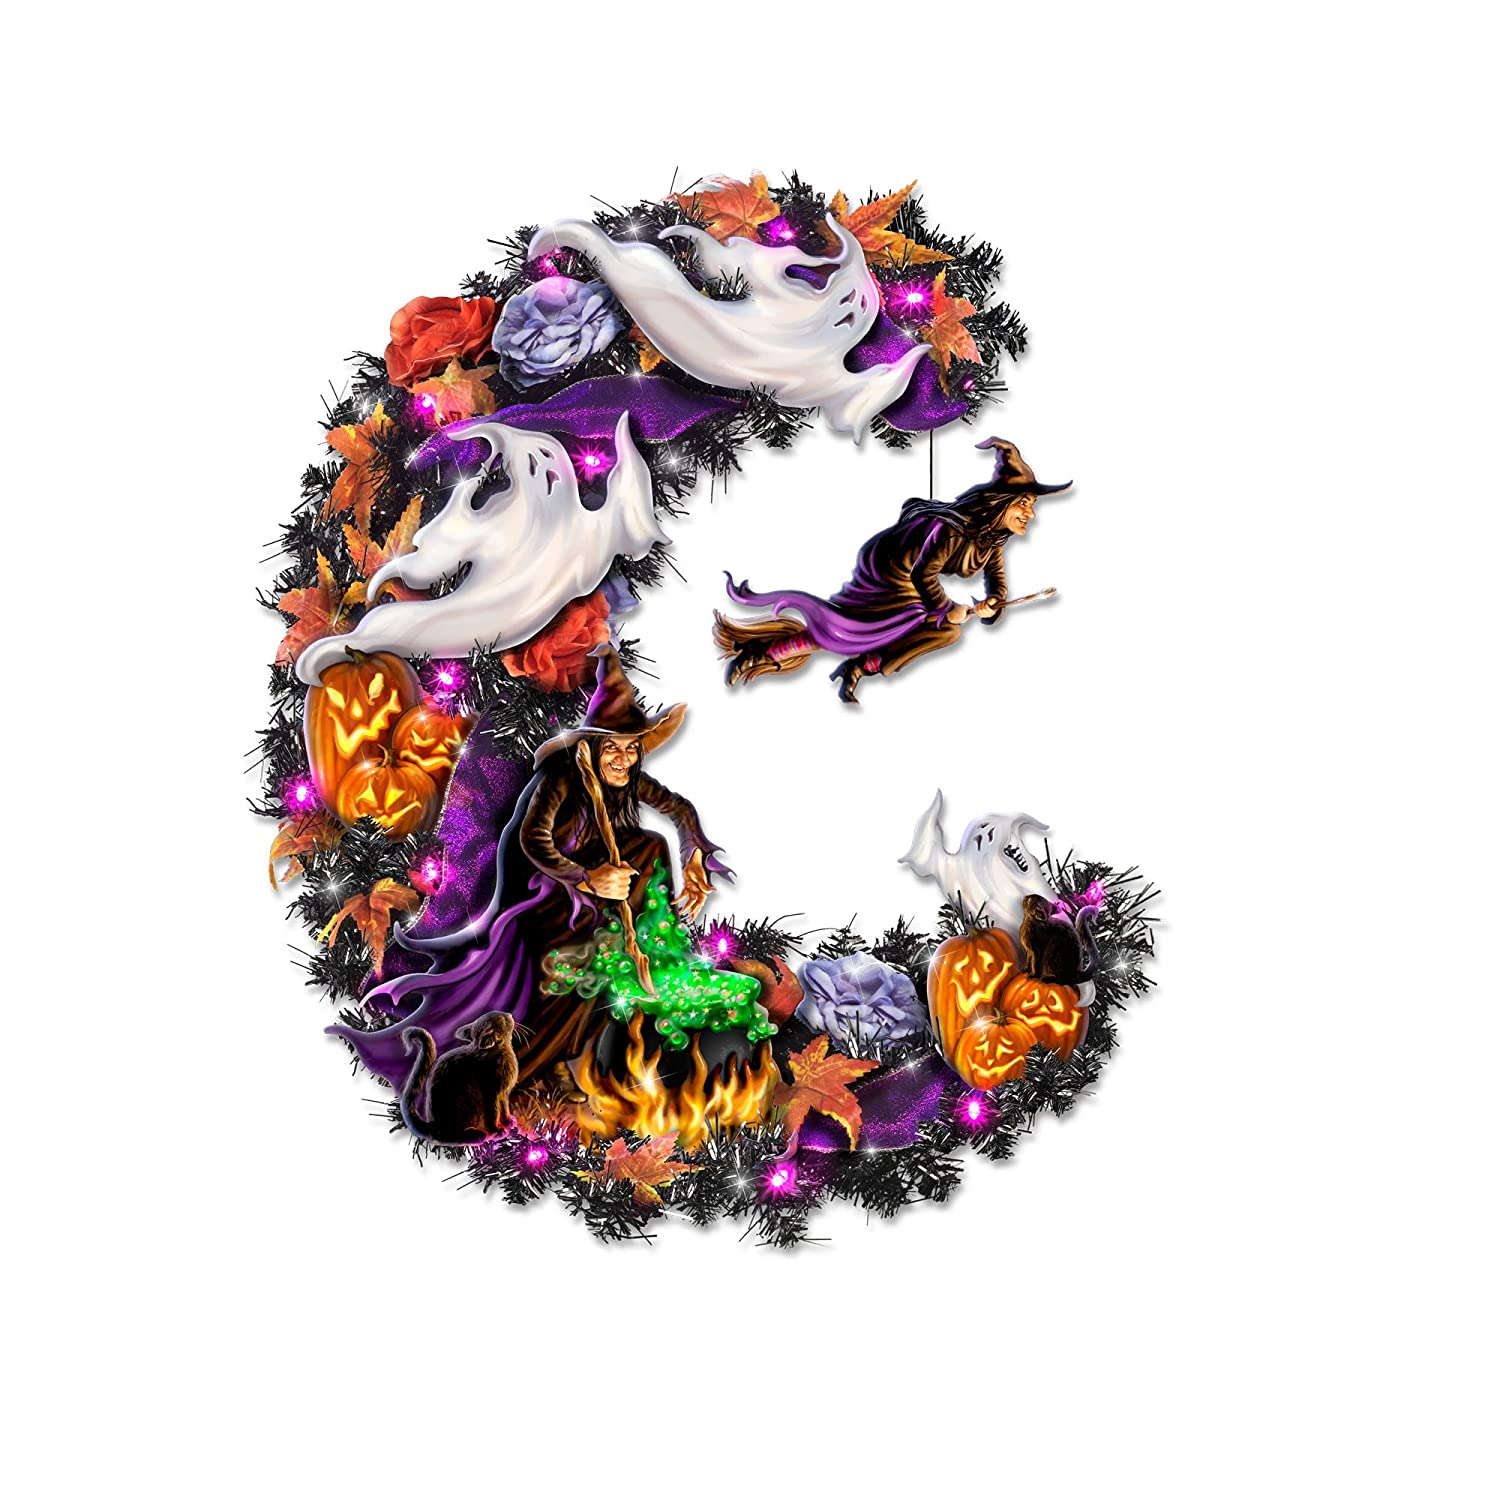 'Best Witches' Halloween Wreath By The Bradford Exchange